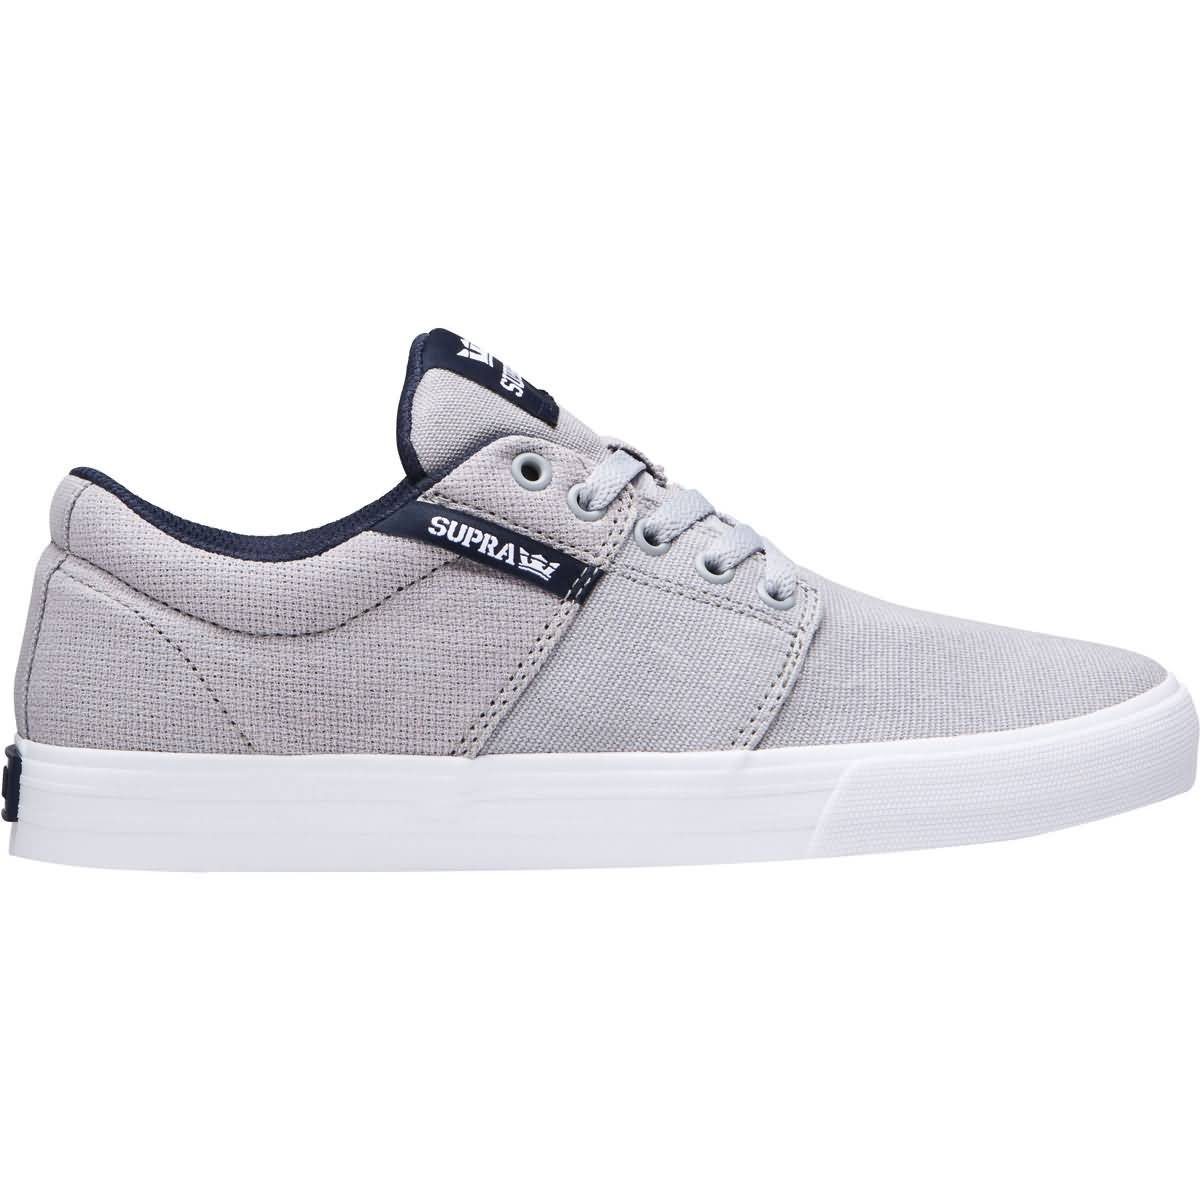 Galleon Supra Men's Stacks Vulc II '18 Shoes,8,Lt Grey